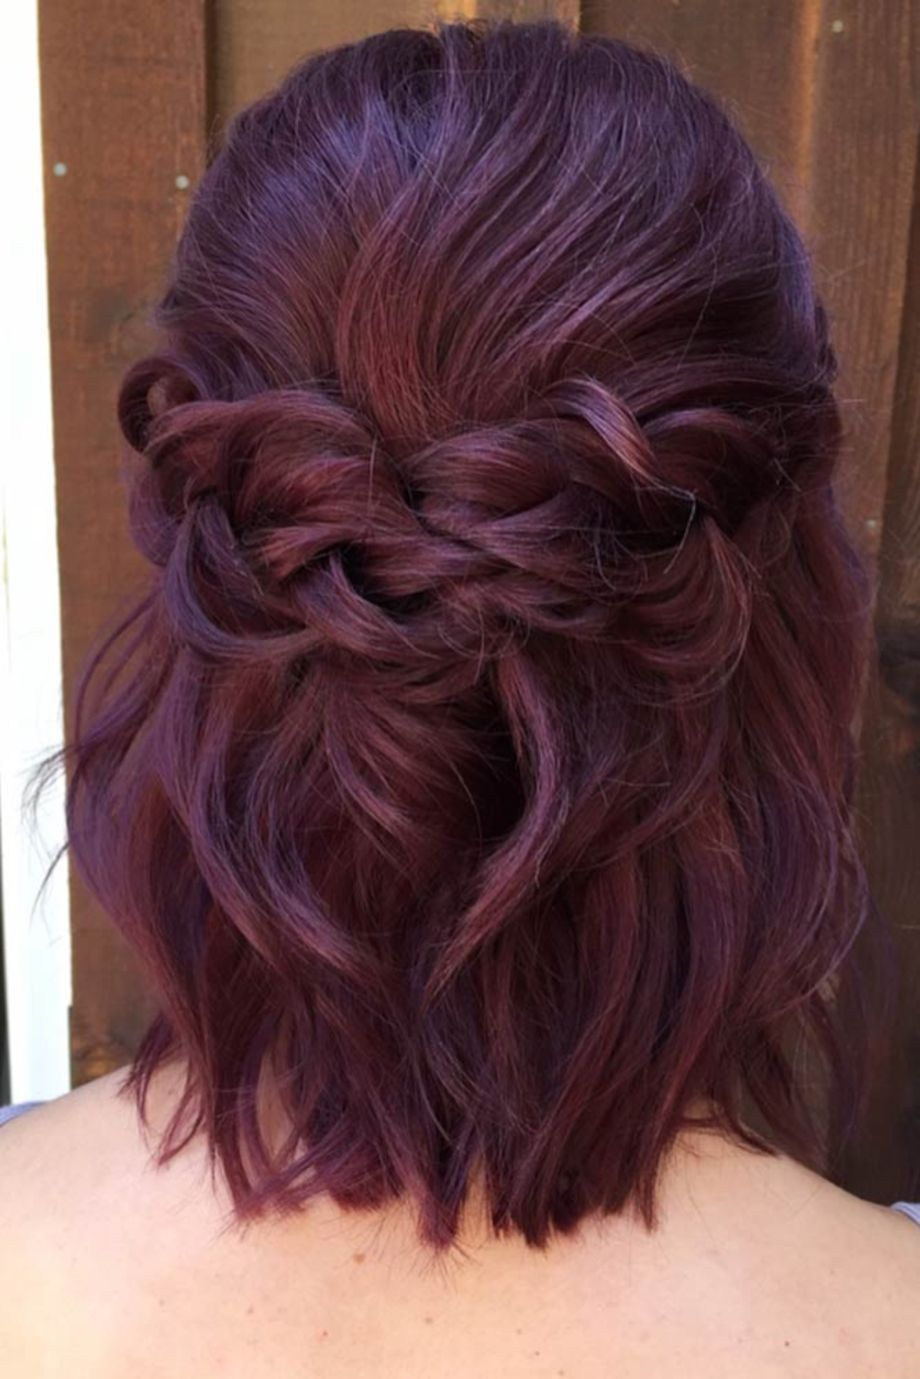 66 stunning wedding hairstyle ideas for shoulder length hair